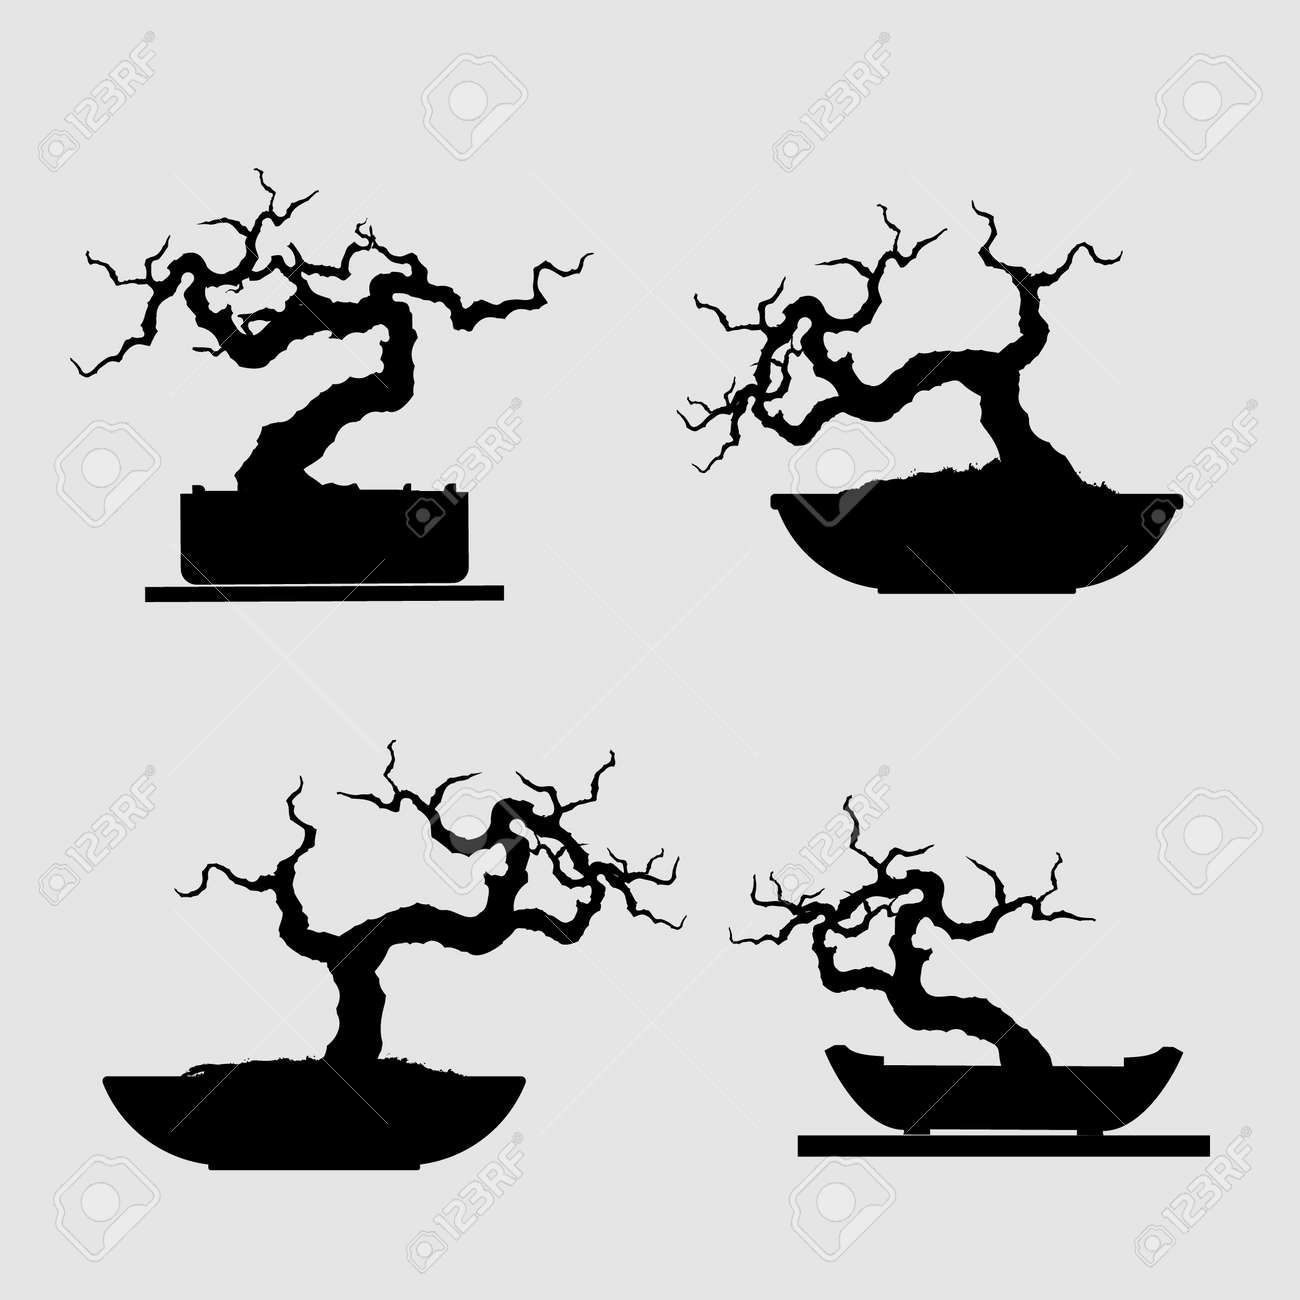 Bonsai Tree Black Silhouette Detailed Image Vector Illustration Royalty Free Cliparts Vectors And Stock Illustration Image 89101645